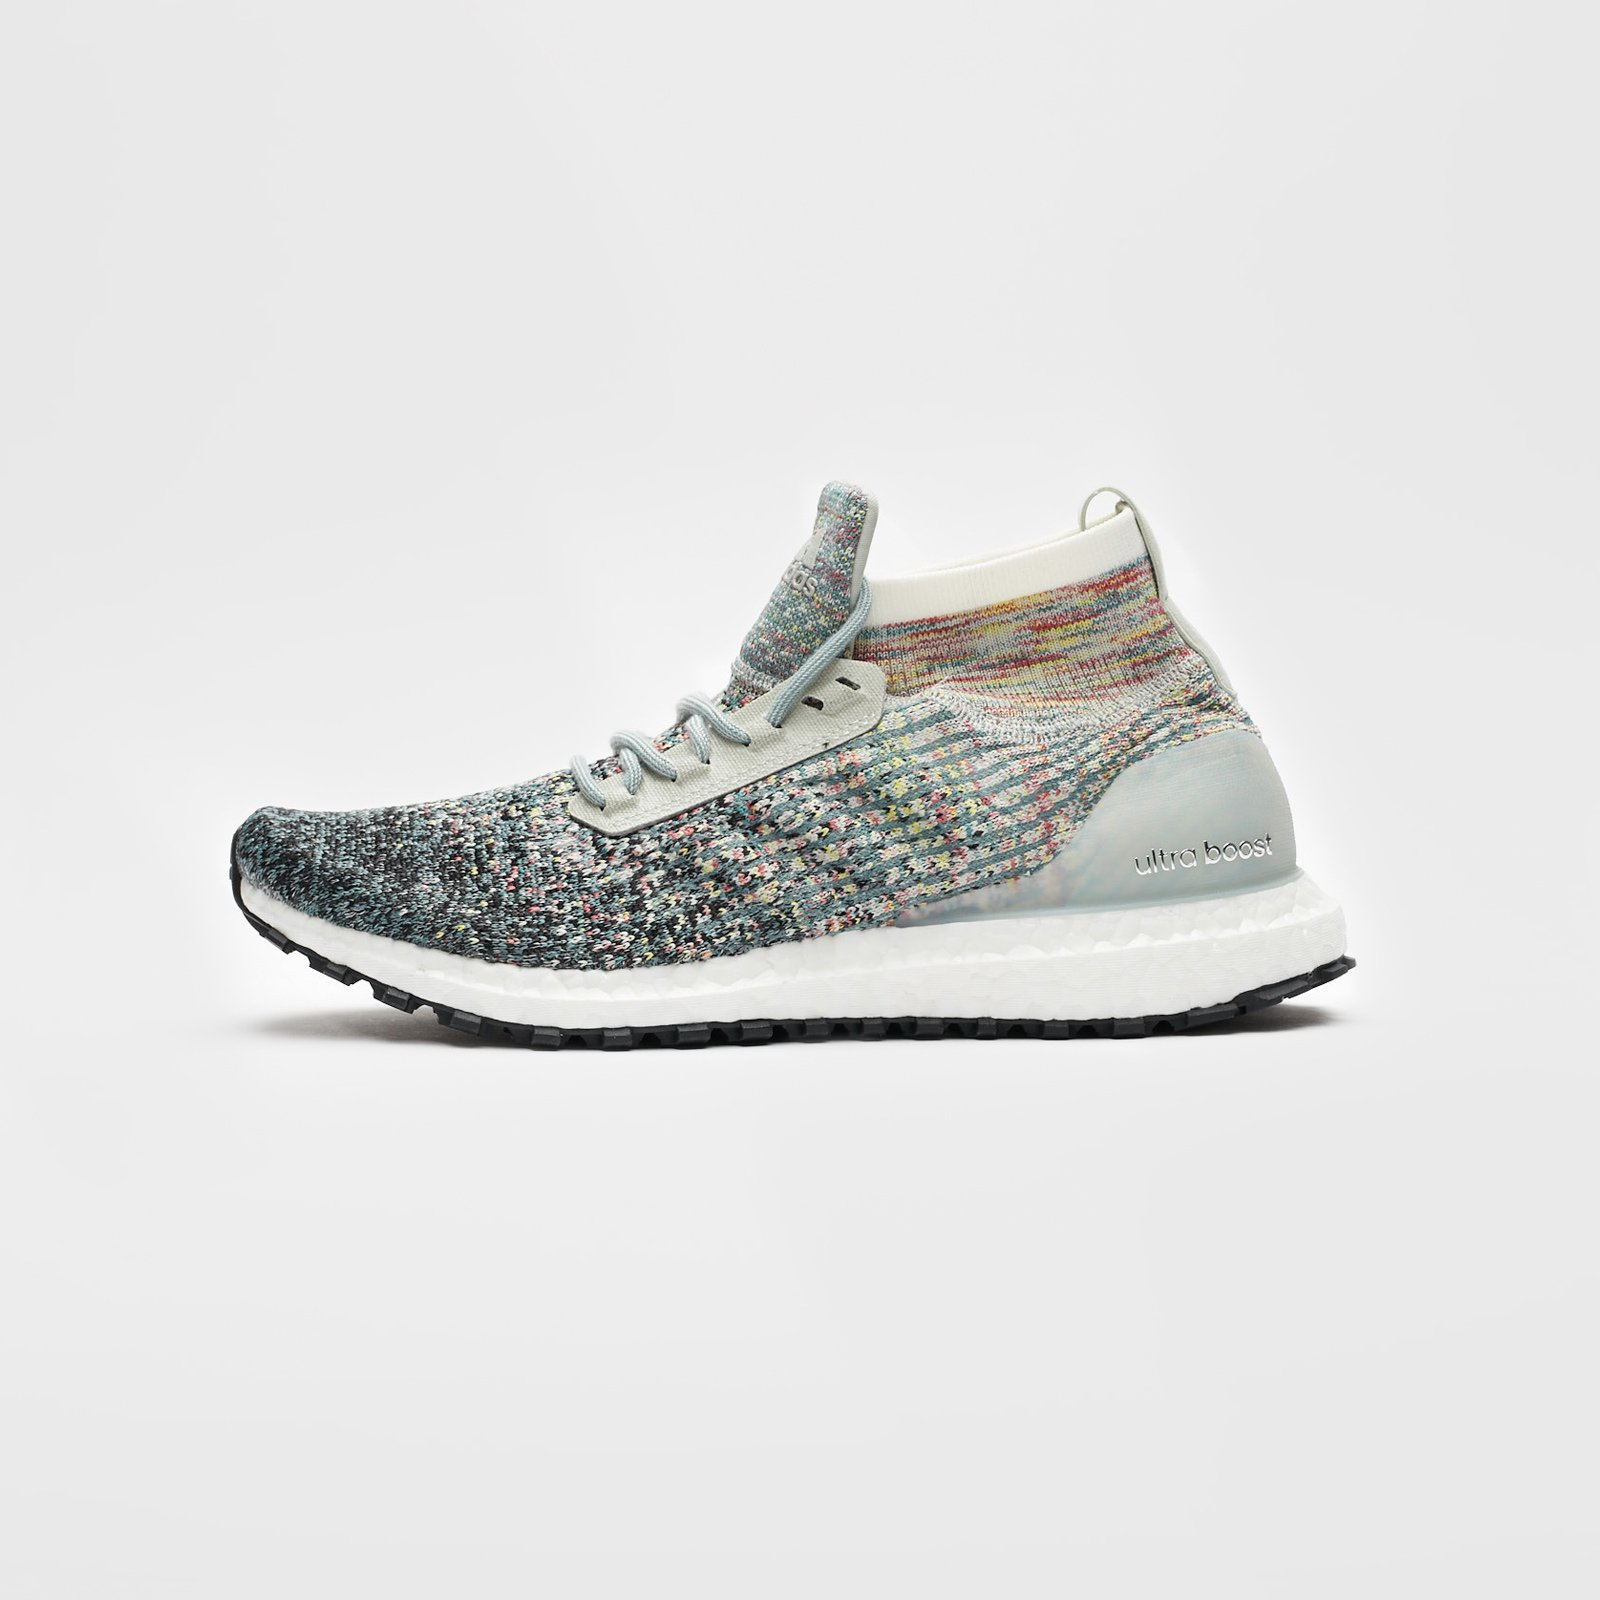 adidas Ultraboost All Terrain Ltd Cm8254 Basketsnstuff